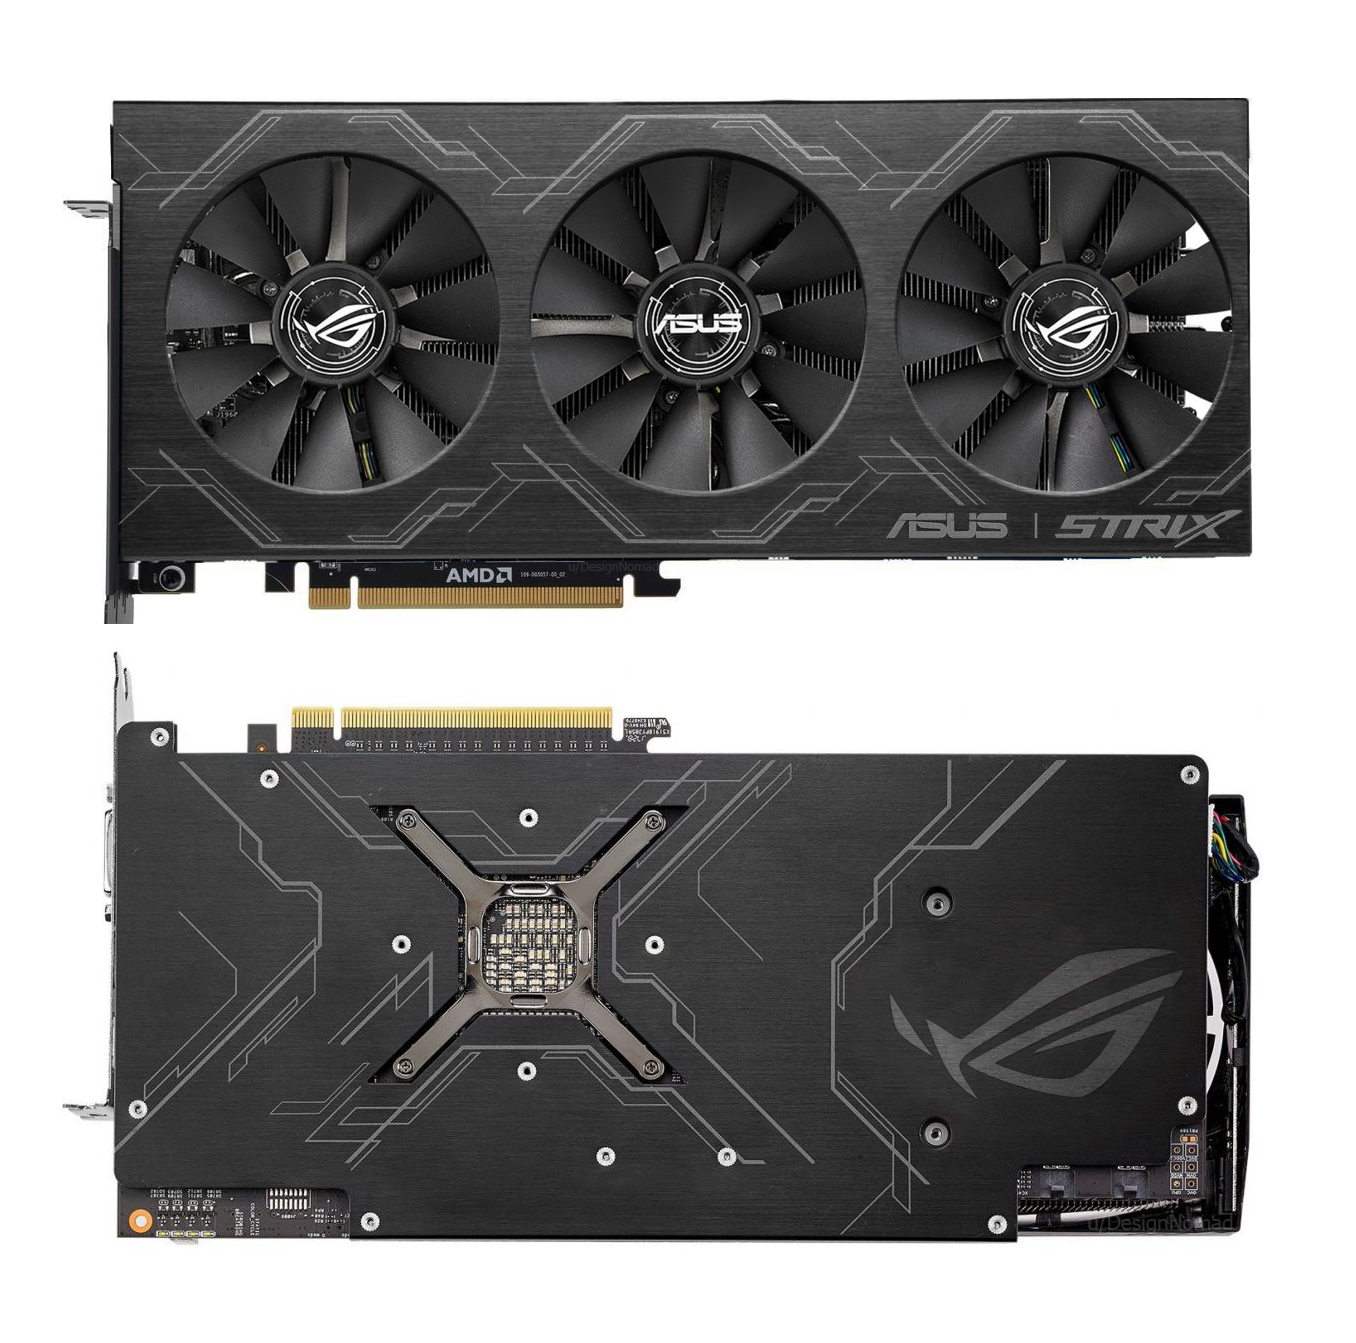 ASUS ROG STRIX VEGA LIMITED EDITION